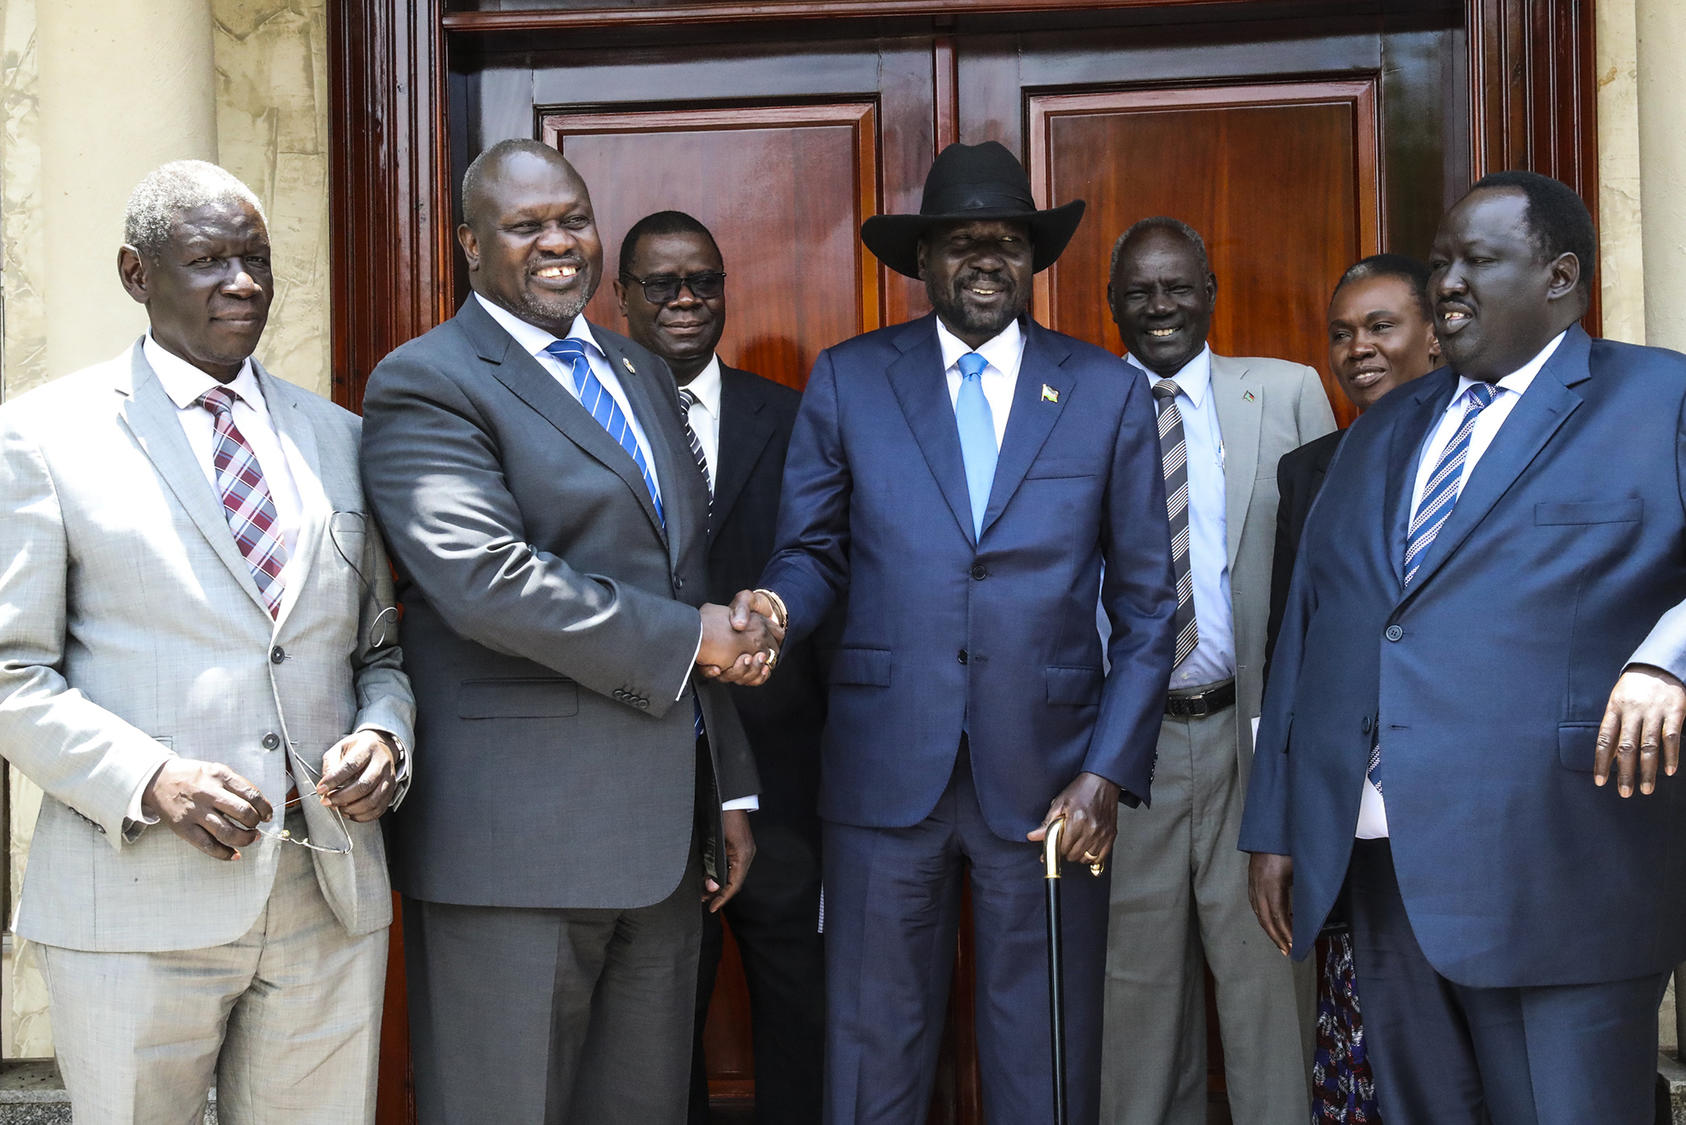 Salva Kiir (center right), president of the Republic of South Sudan, shakes hands with Riek Machar, opposition leader, at the Presidential Palace in Juba, Sept. 11, 2019 (UN Photo/Isaac Billy)